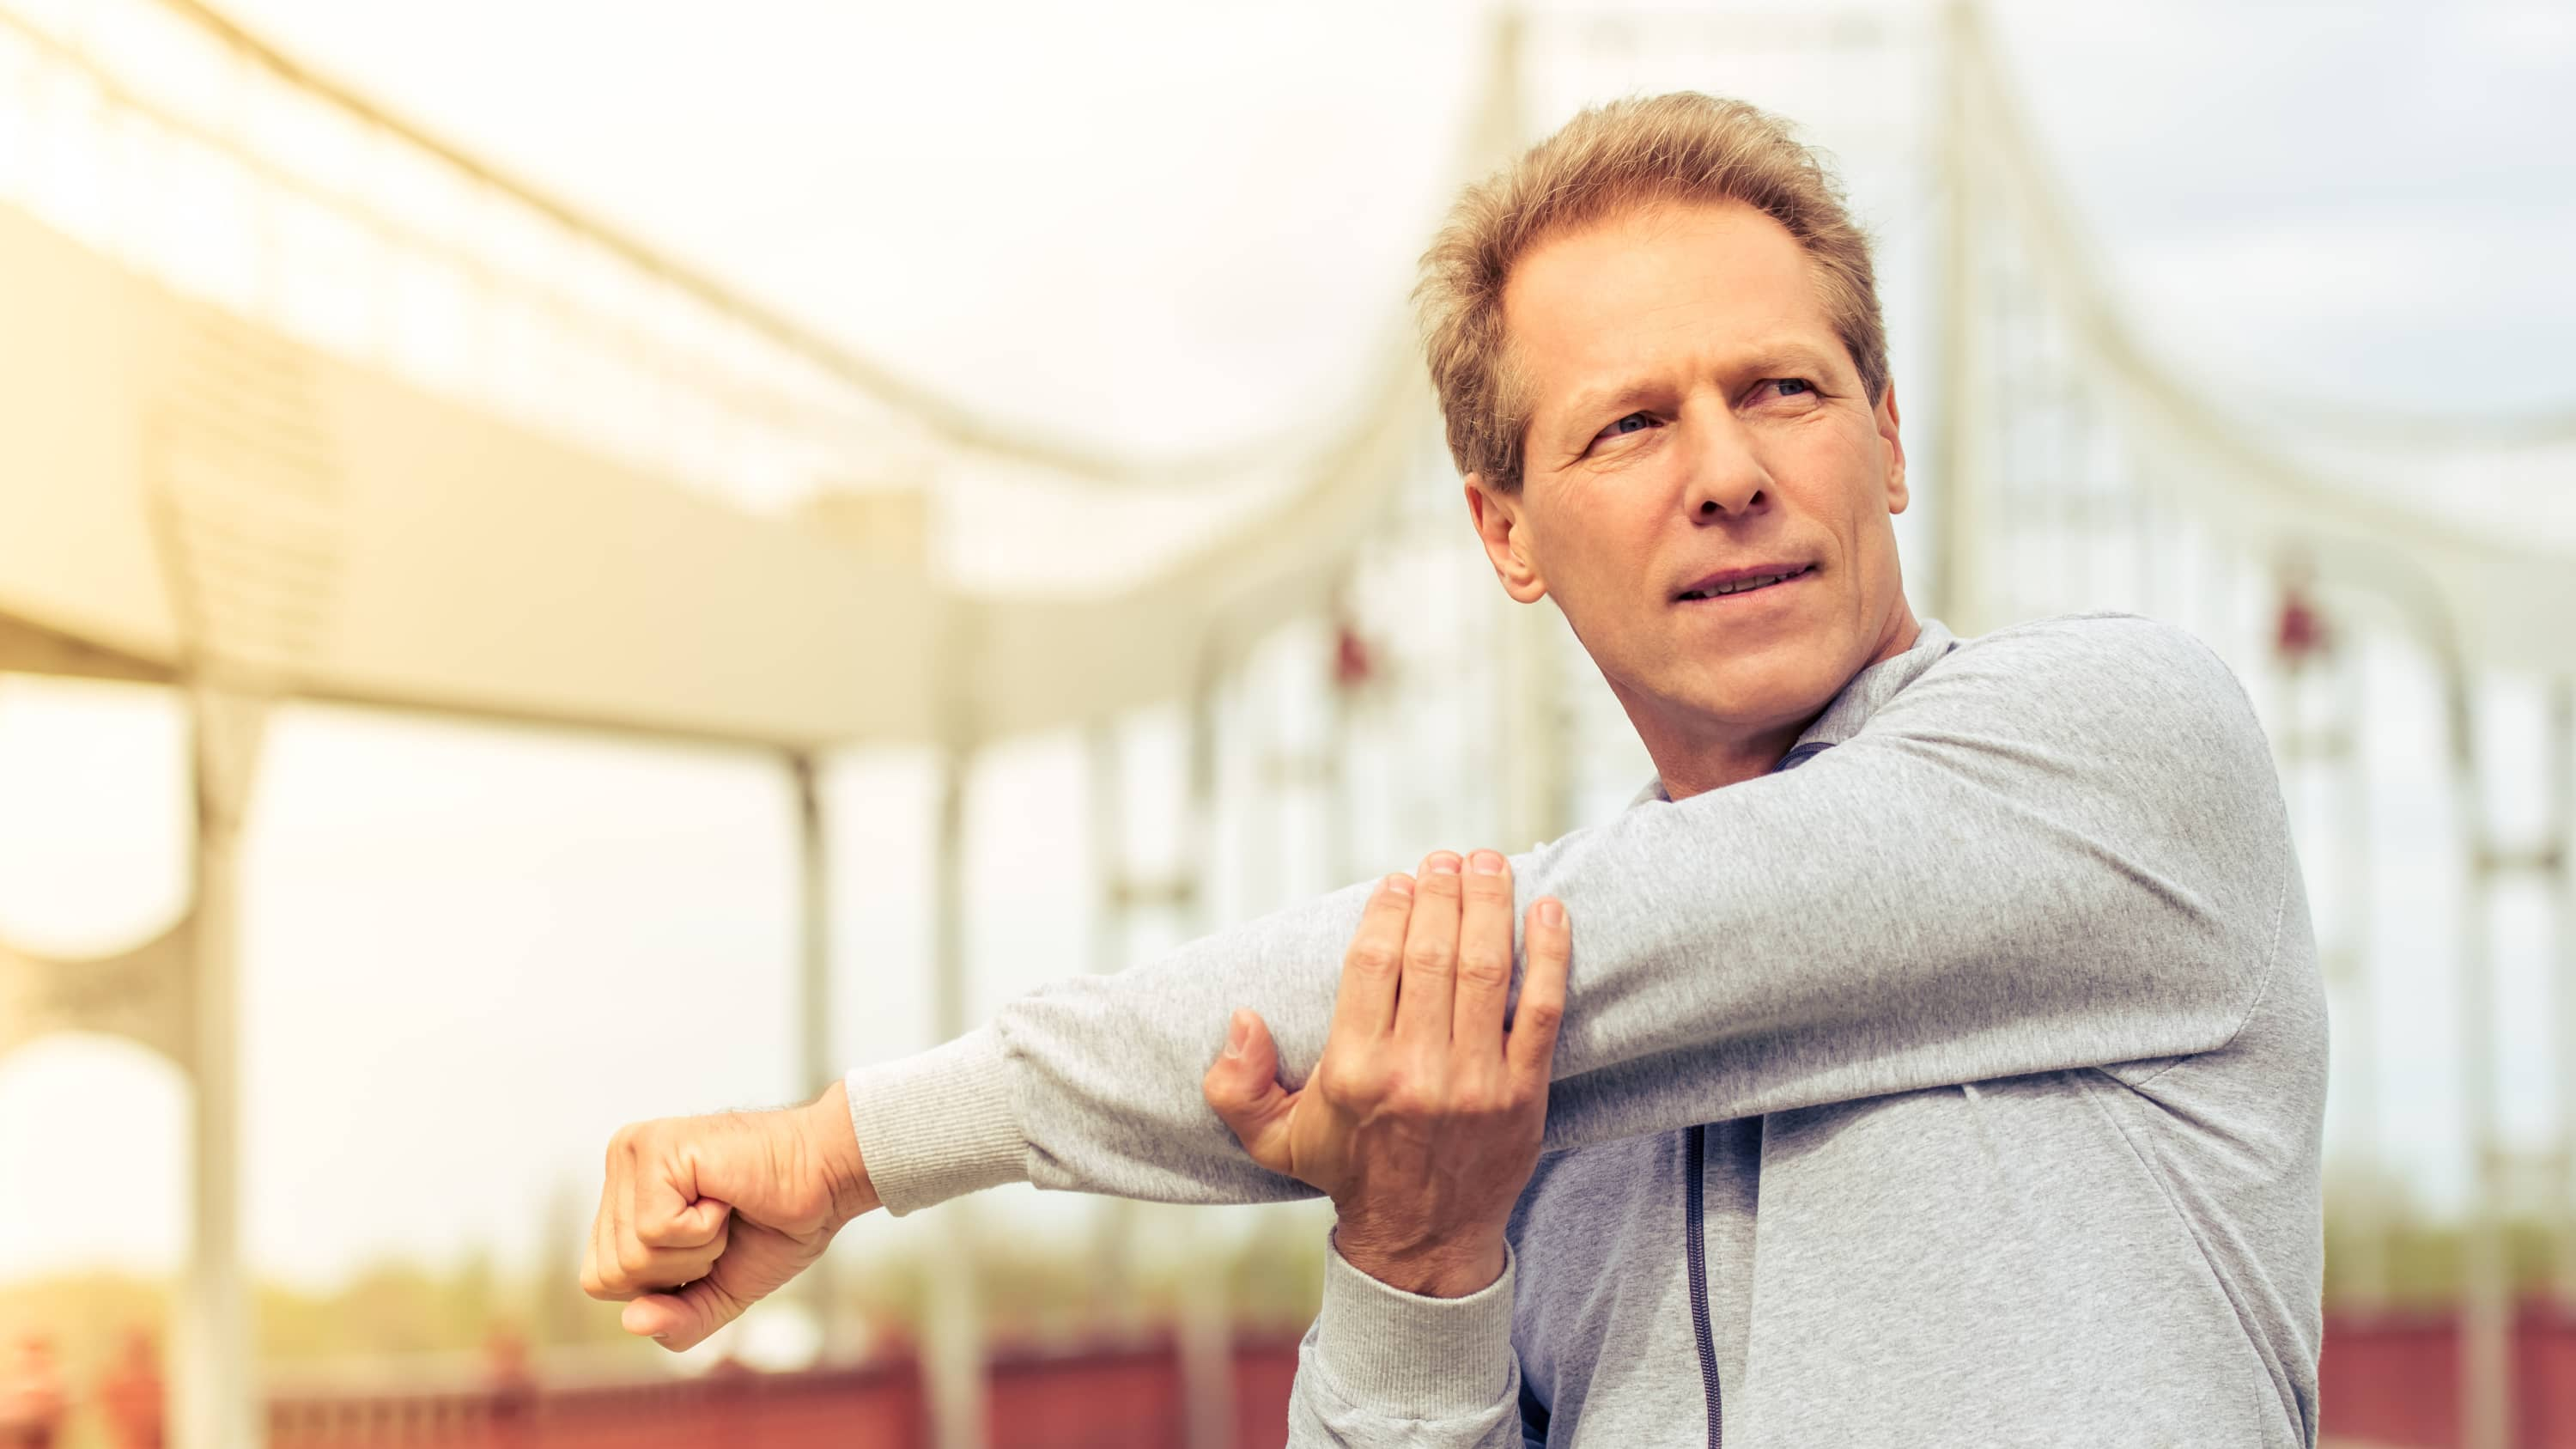 Man stretching before workout, possibly after receiving body-contouring surgery